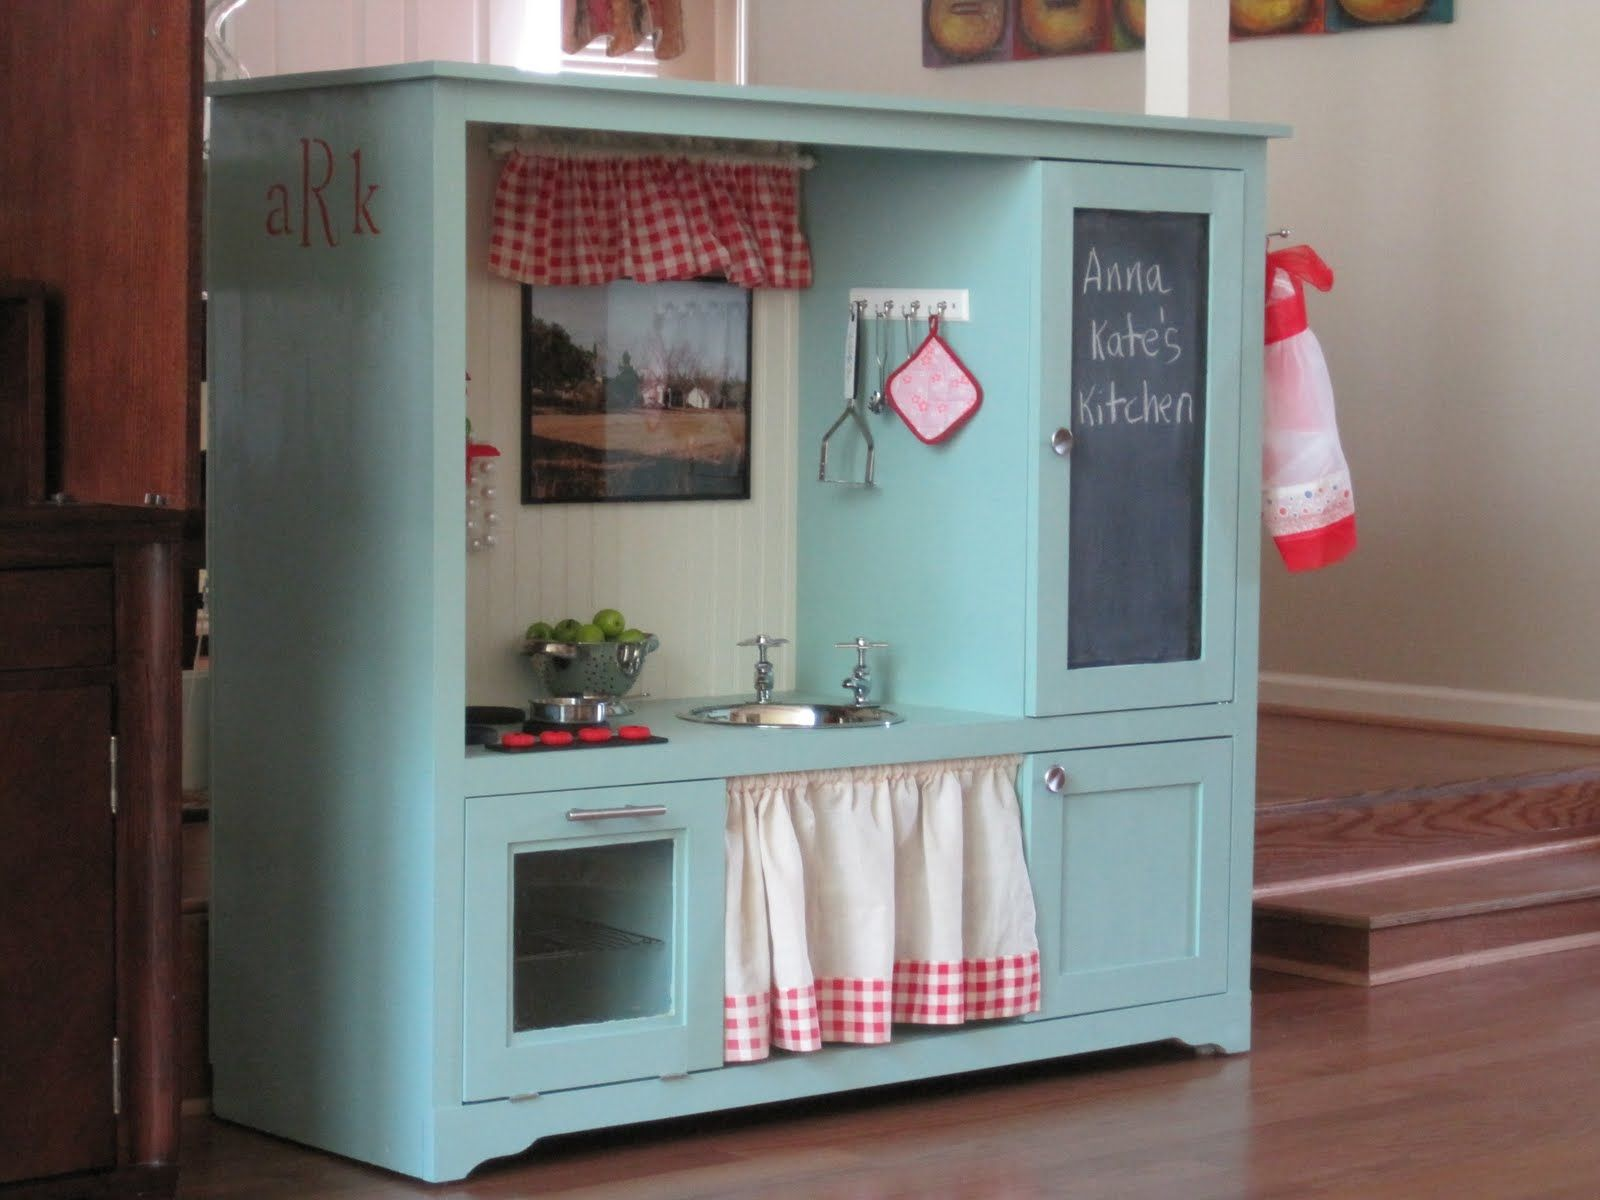 Kid's kitchen made from tv cabinet | Play kitchen ideas ...